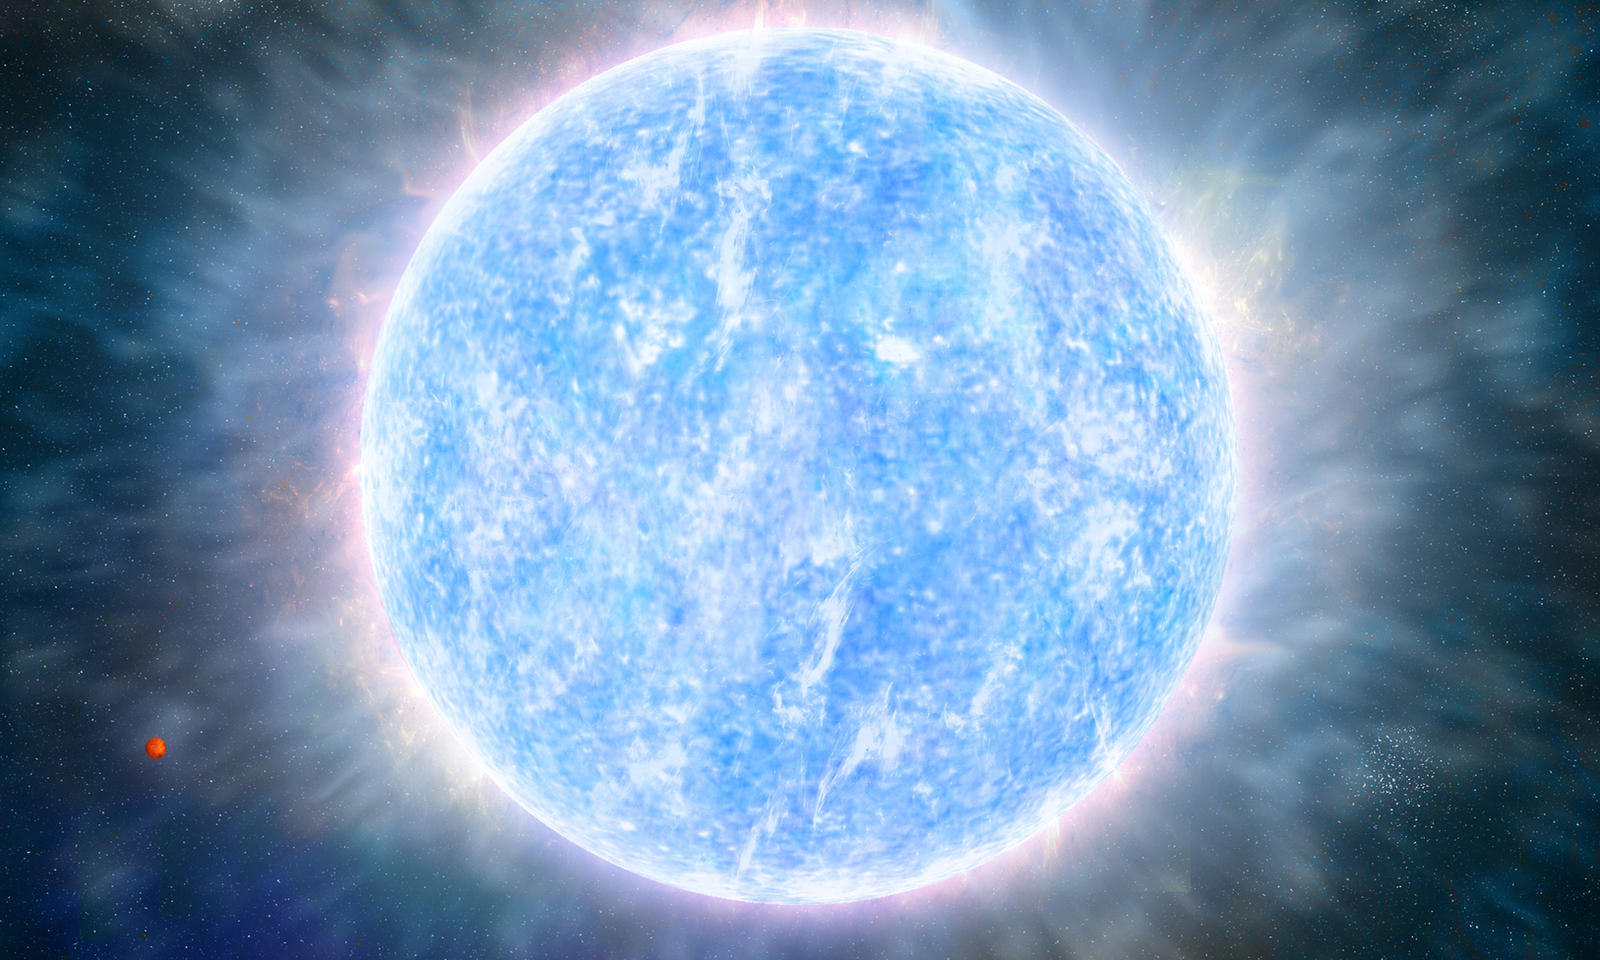 R136a1, Most Massive Star in the Universe (Wolf-Rayet Star